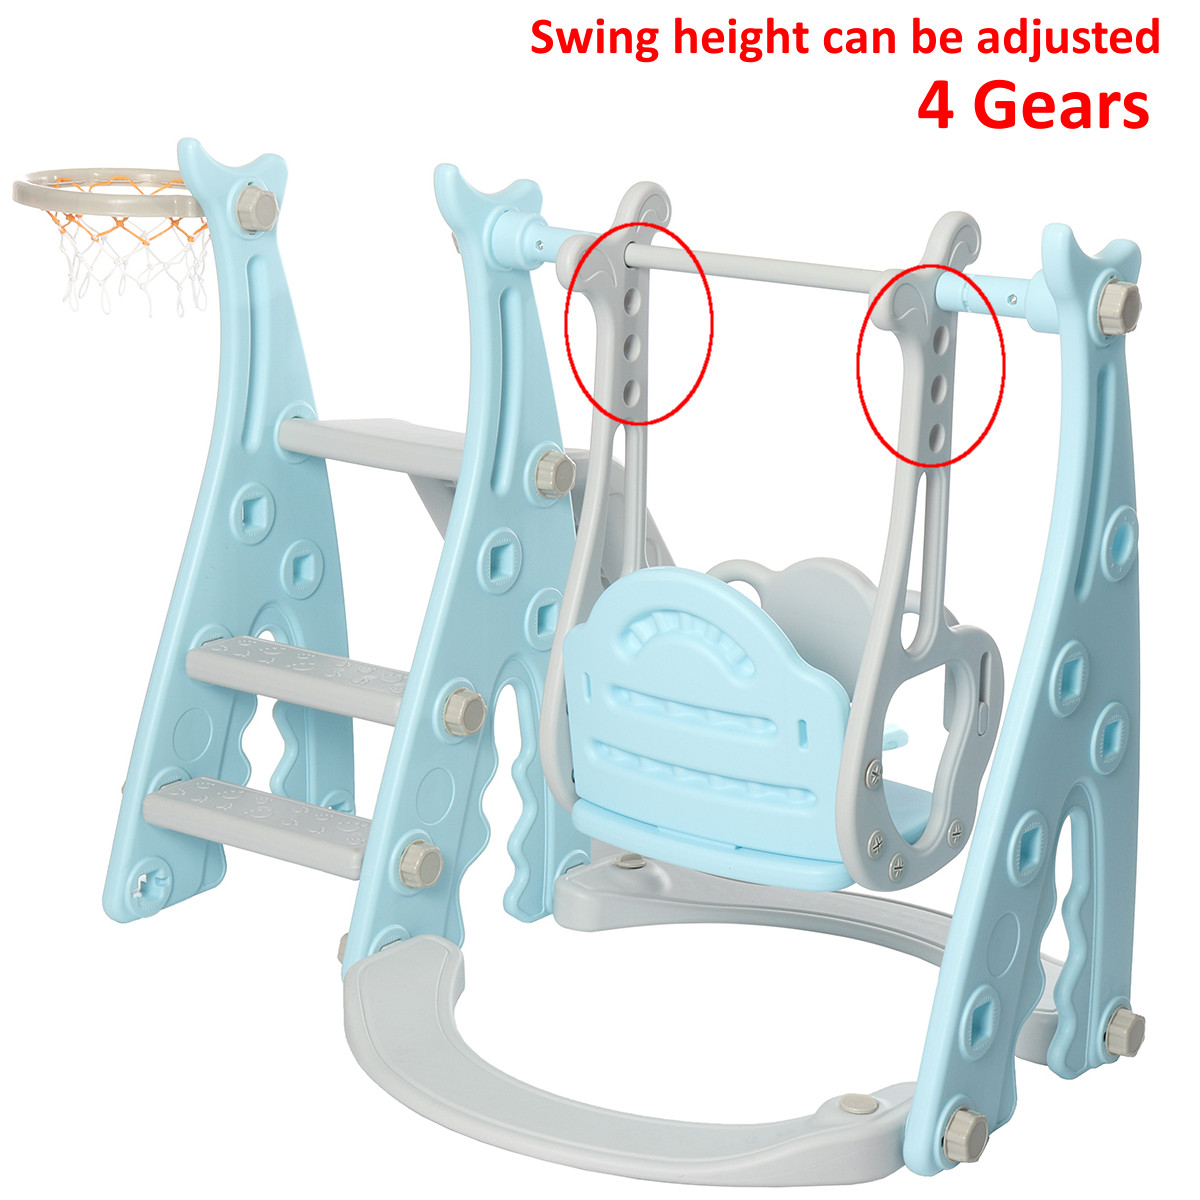 3 IN 1 Large Size Kids Playground Slide & Swing & Basketball Hoop DIY Assembly Set Toys